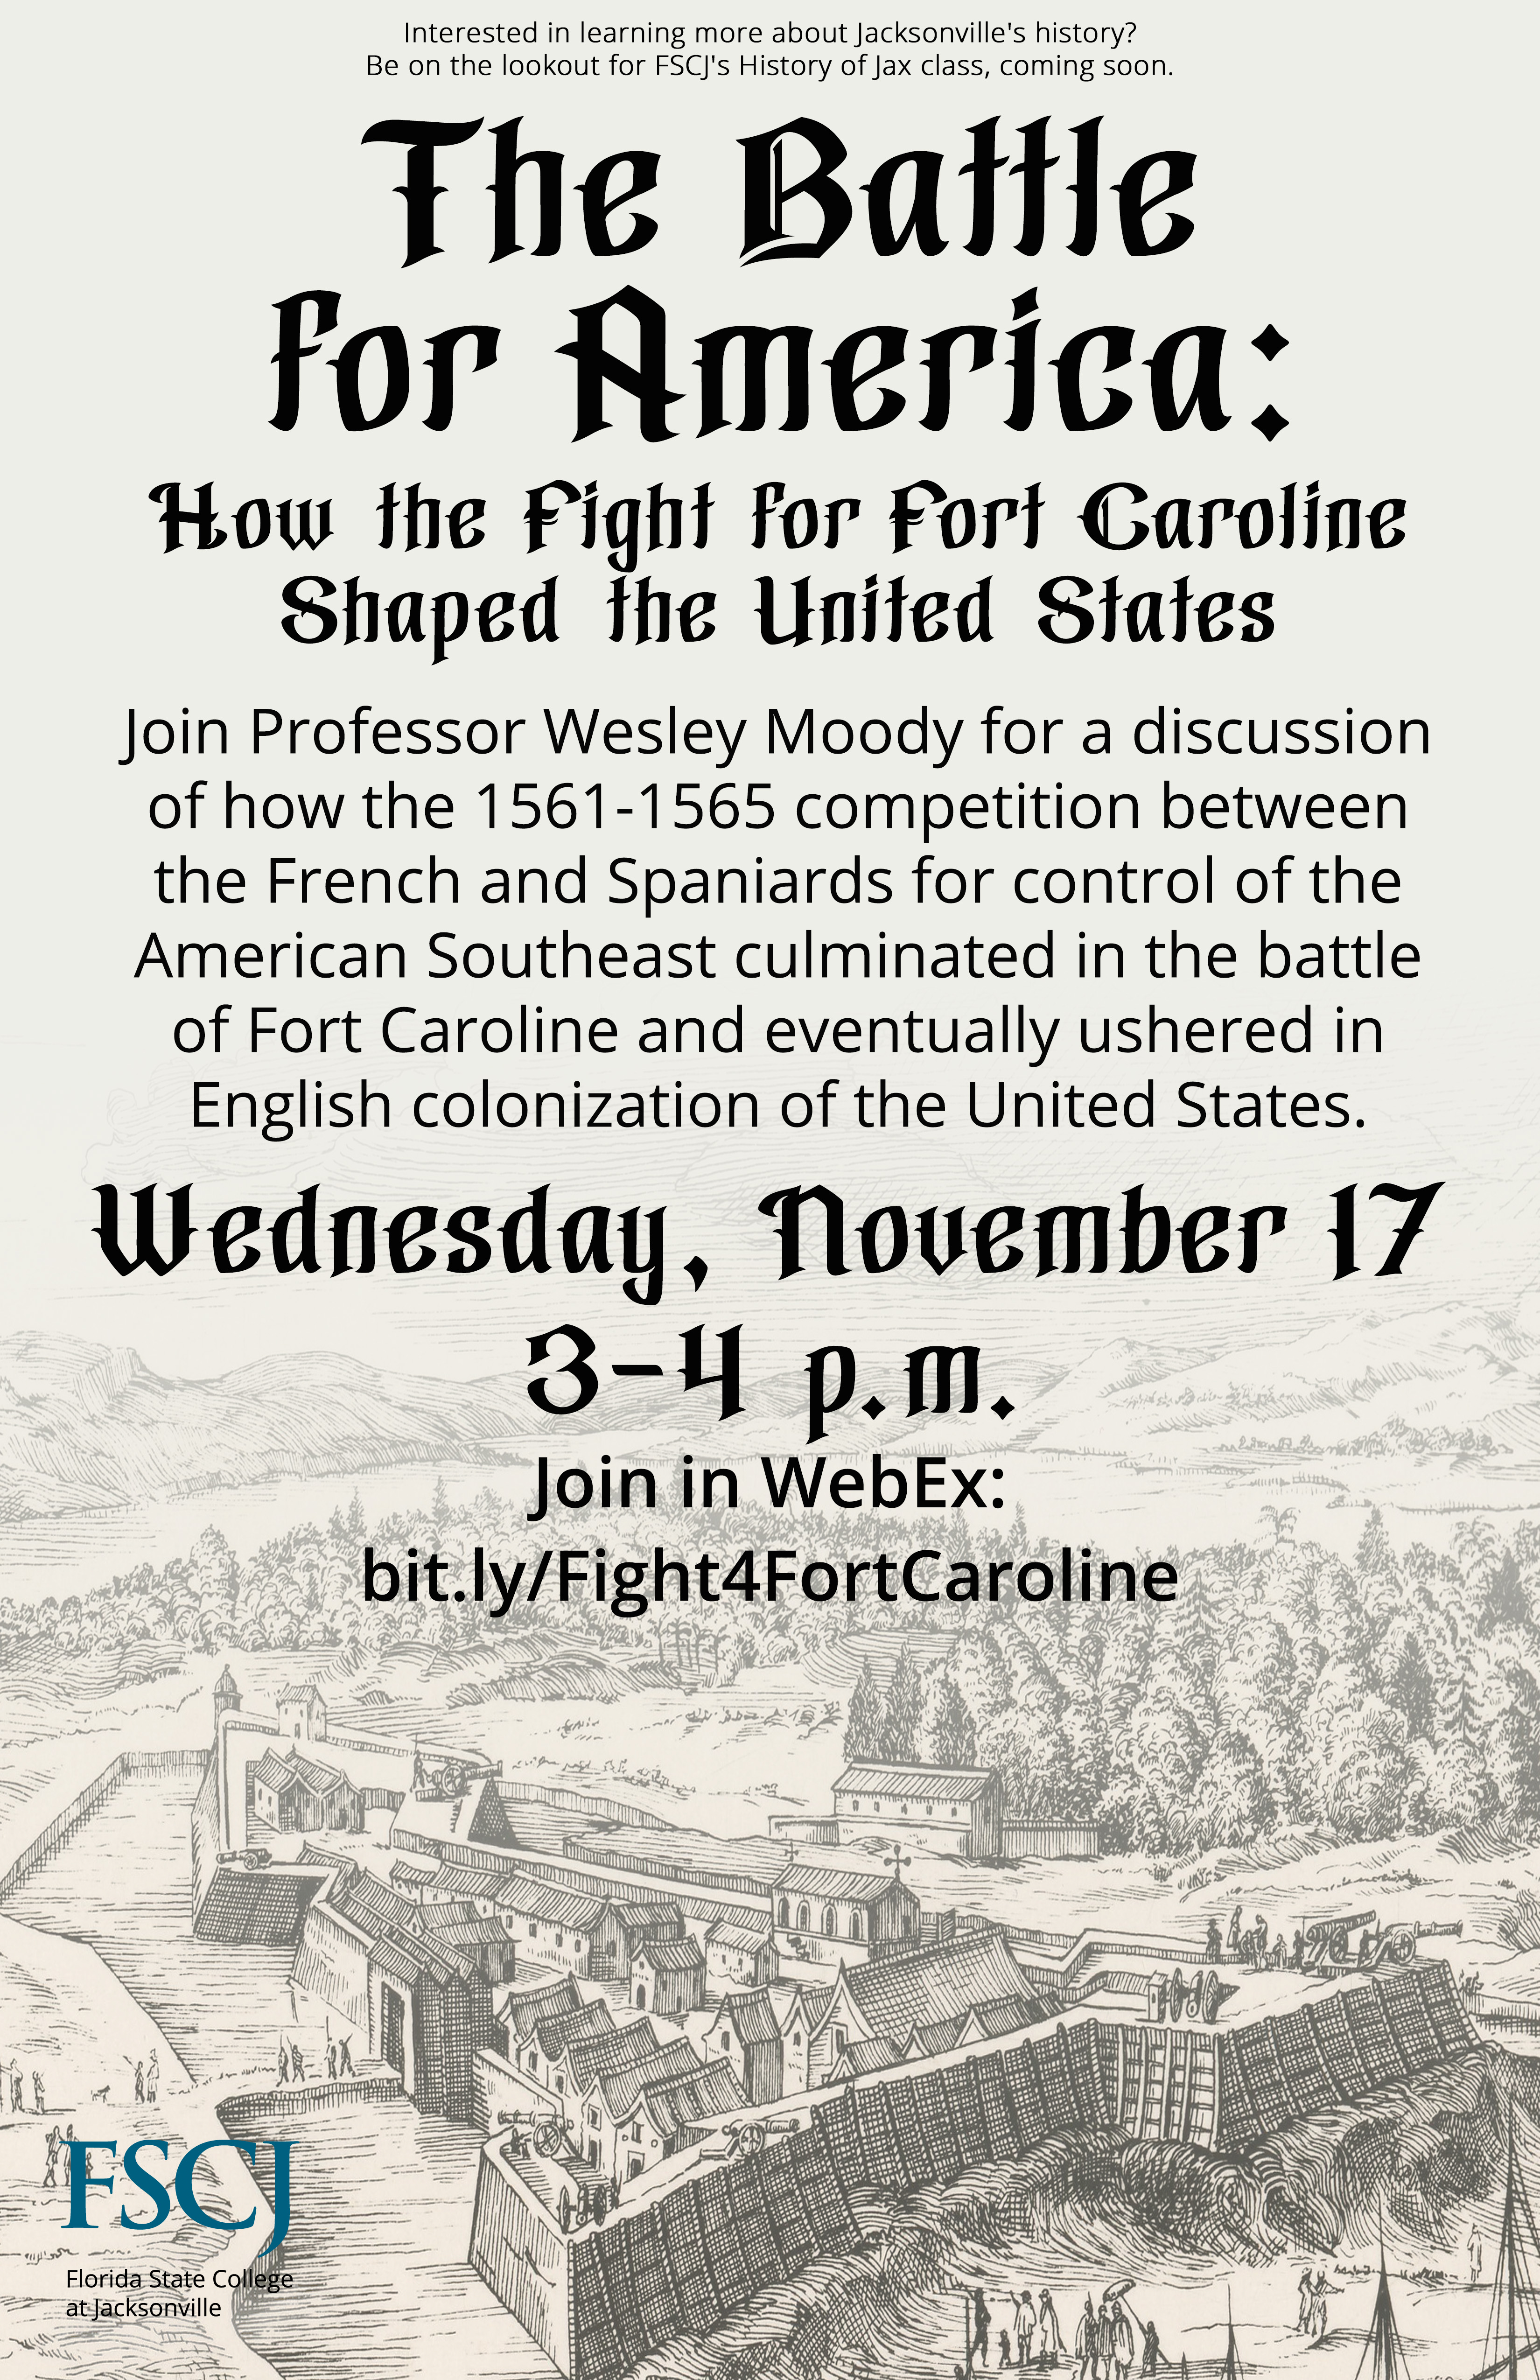 The Battle for America: How the Fight for Fort Caroline Shaped the United States